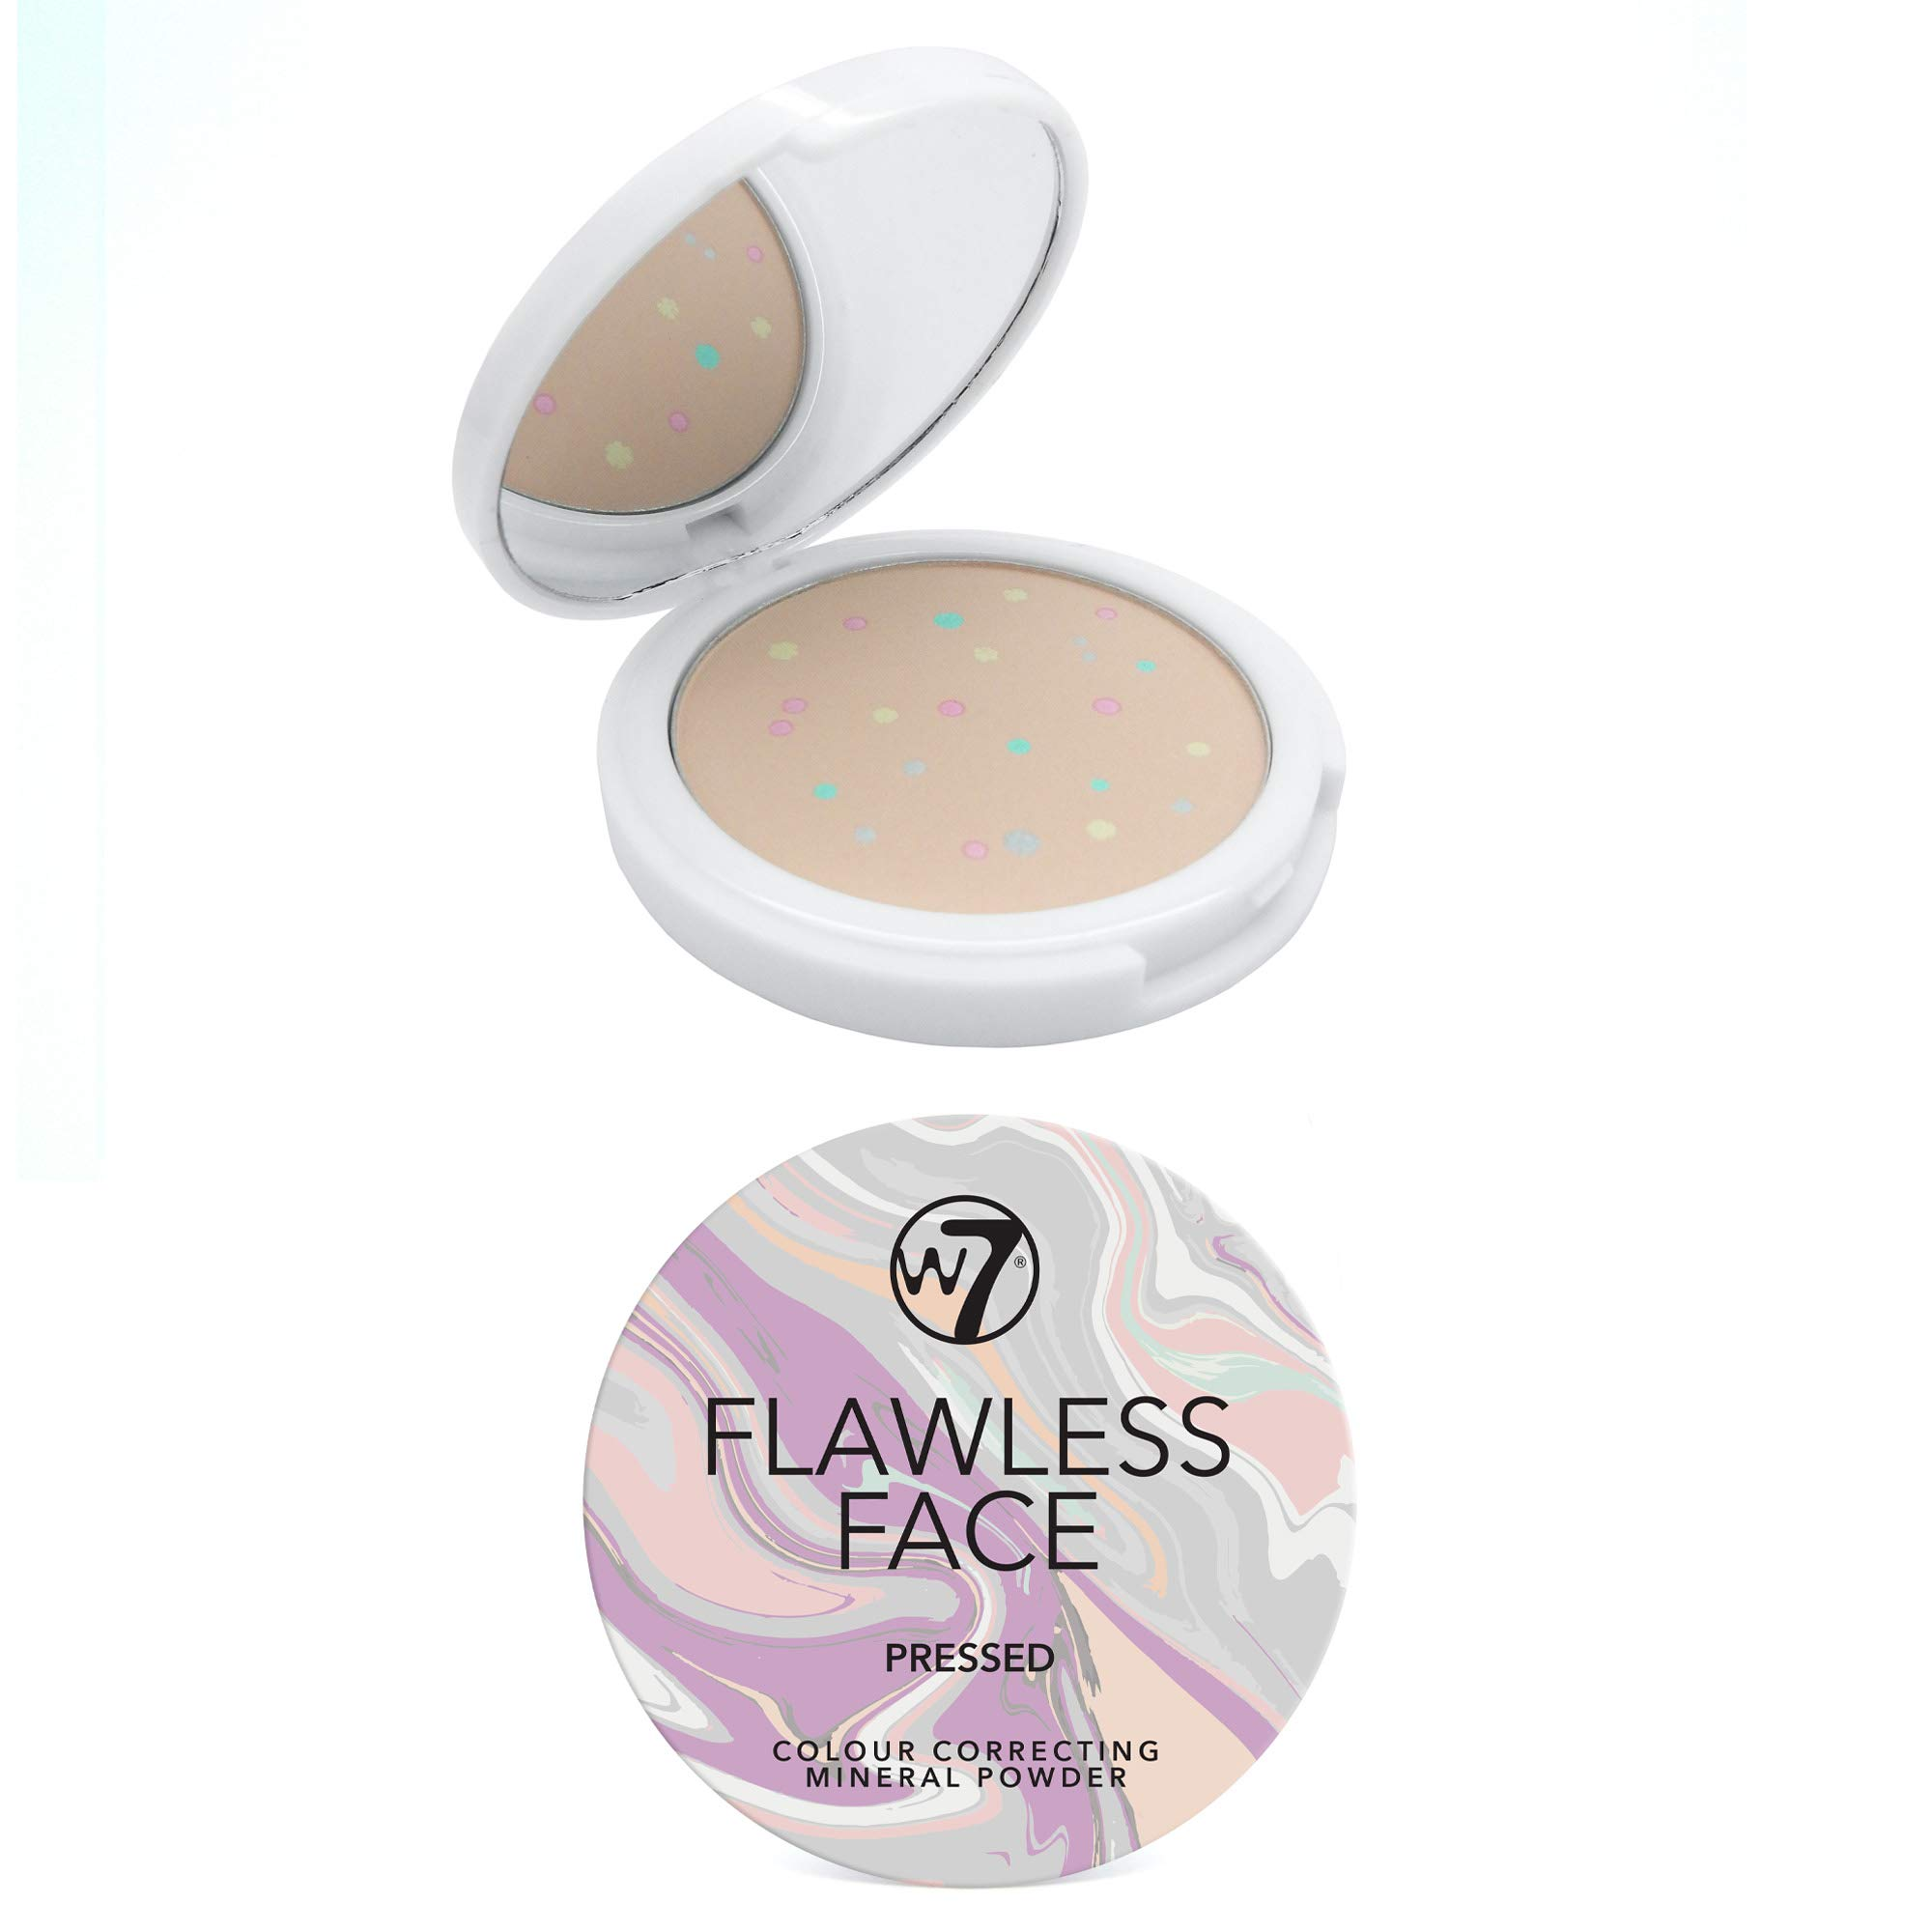 W7 | Flawless Face Colour Correcting Mineral Powder | Pressed Face Powder Makeup | Multi-Coloured Setting Powder Suitable For All Skin Tones | Soft And Lightweight Formula